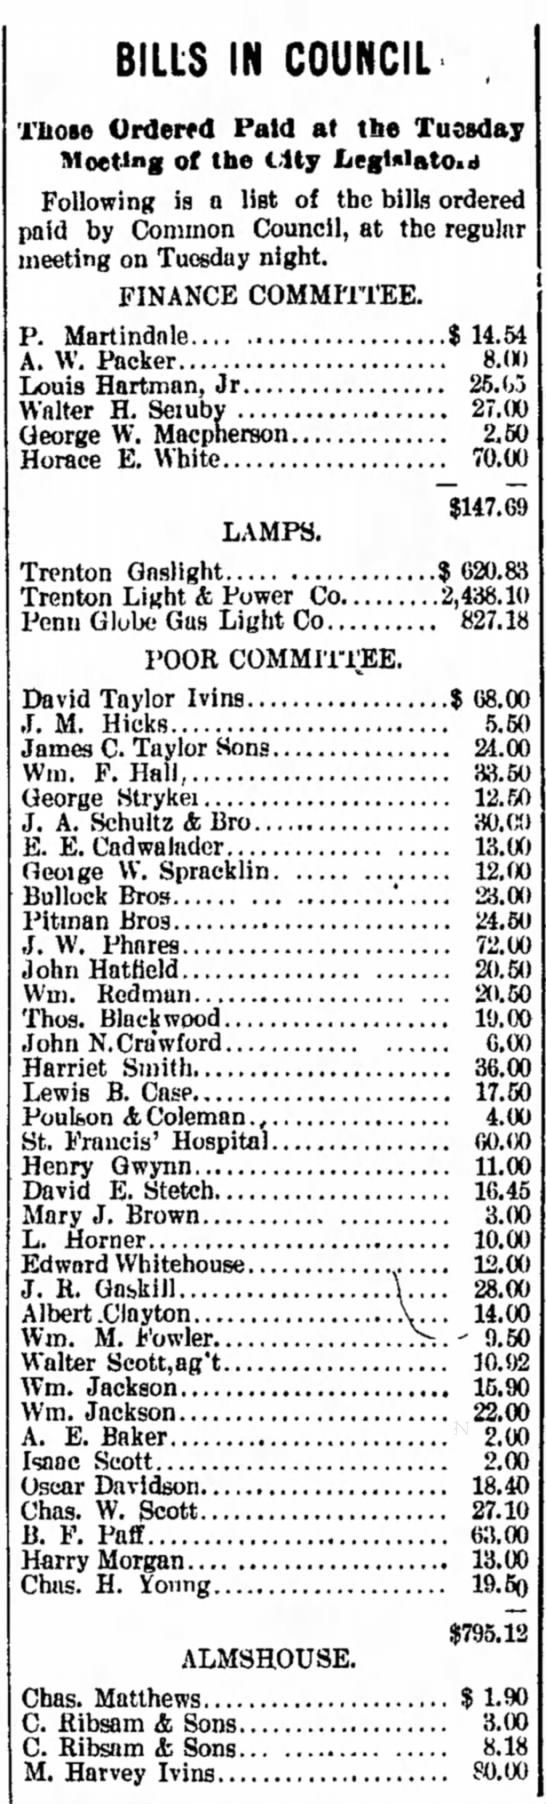 9 Dec 1897 Bills In Council -